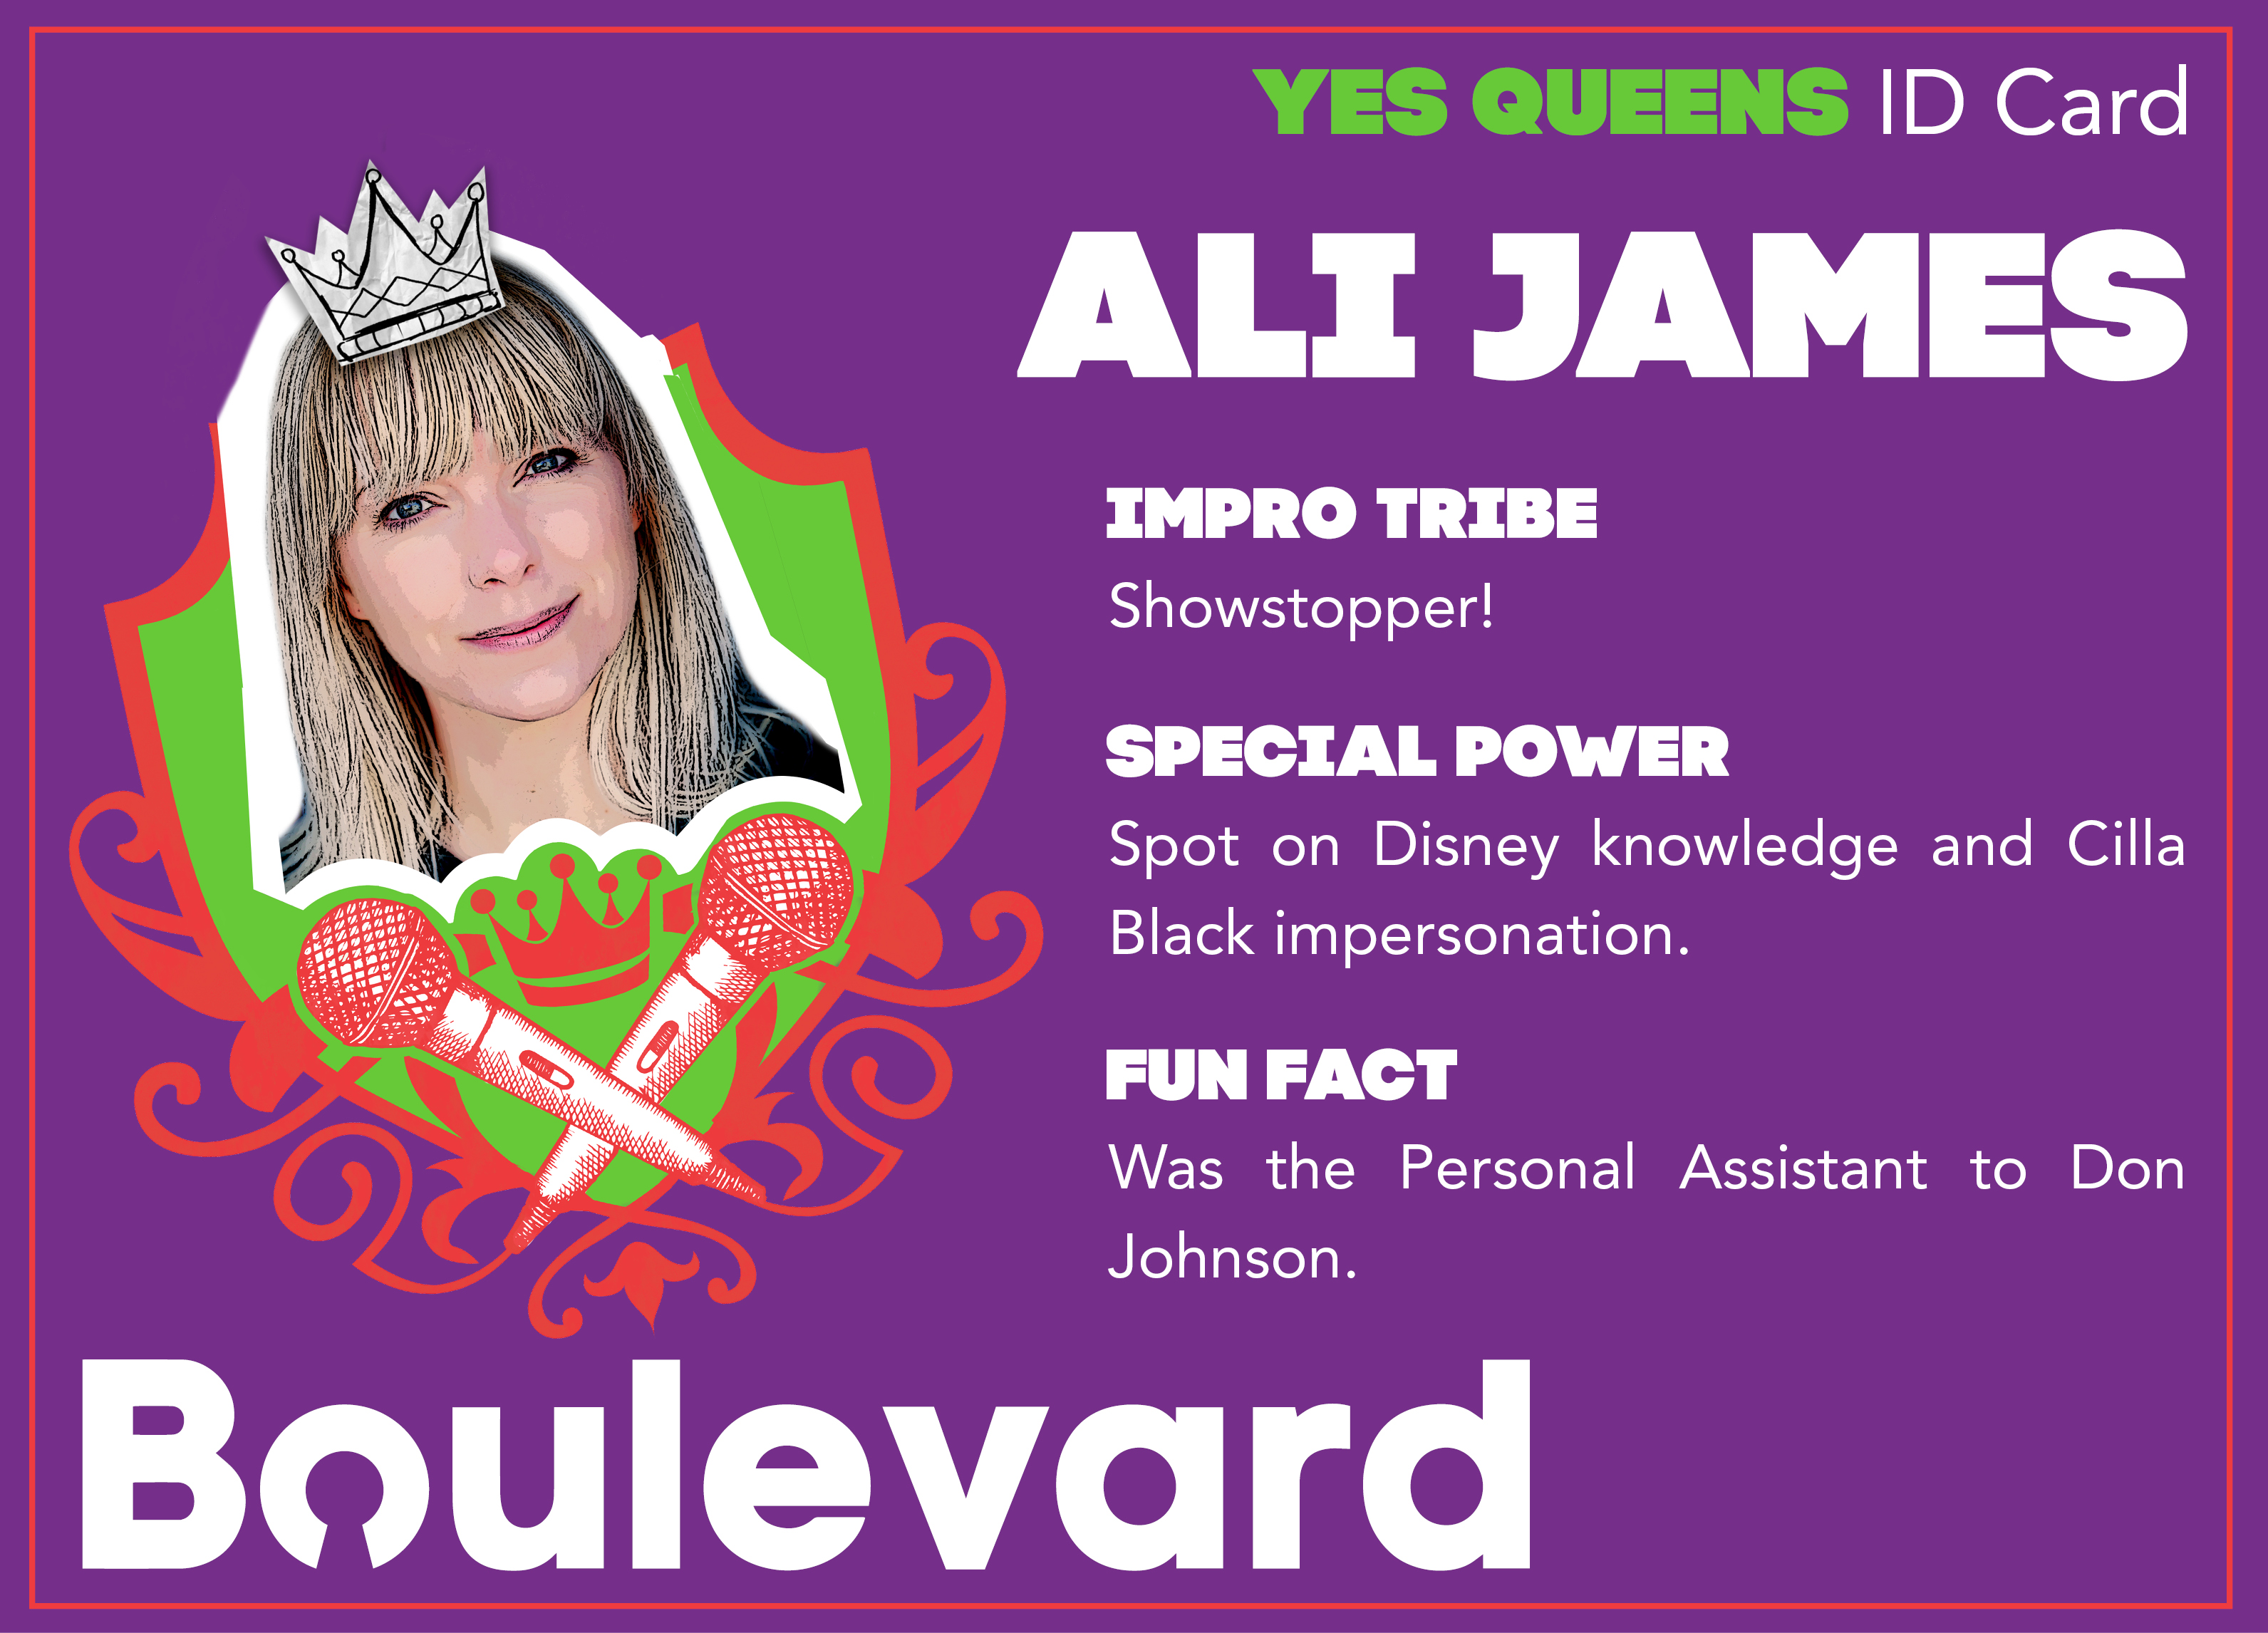 Yes Queens ID Card Ali